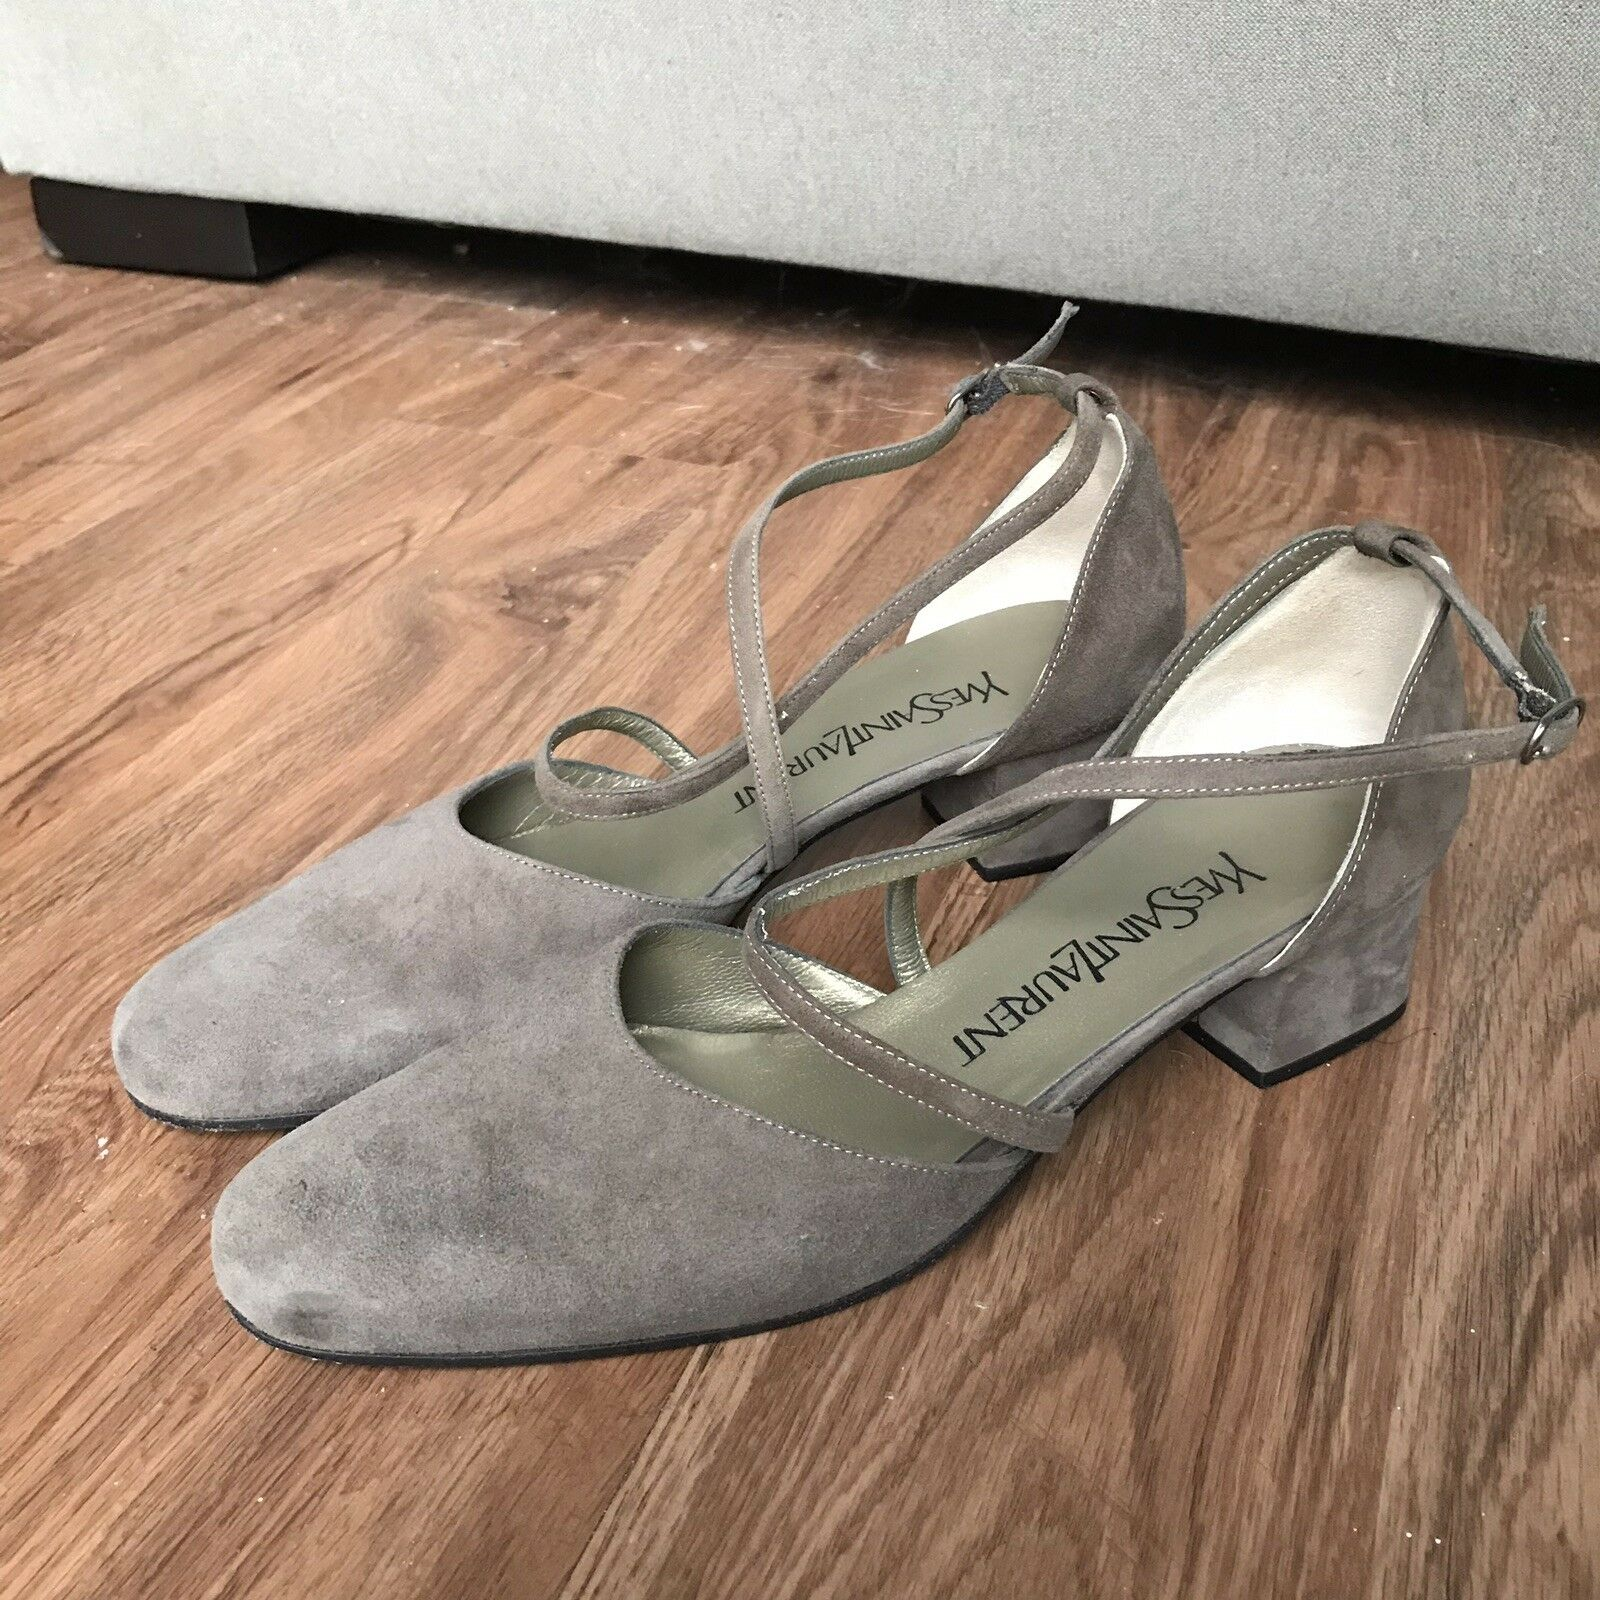 Yves Saint Laurent 7 M Taupe Suede Pumps Crisscross Straps Low Heel Italy YSL